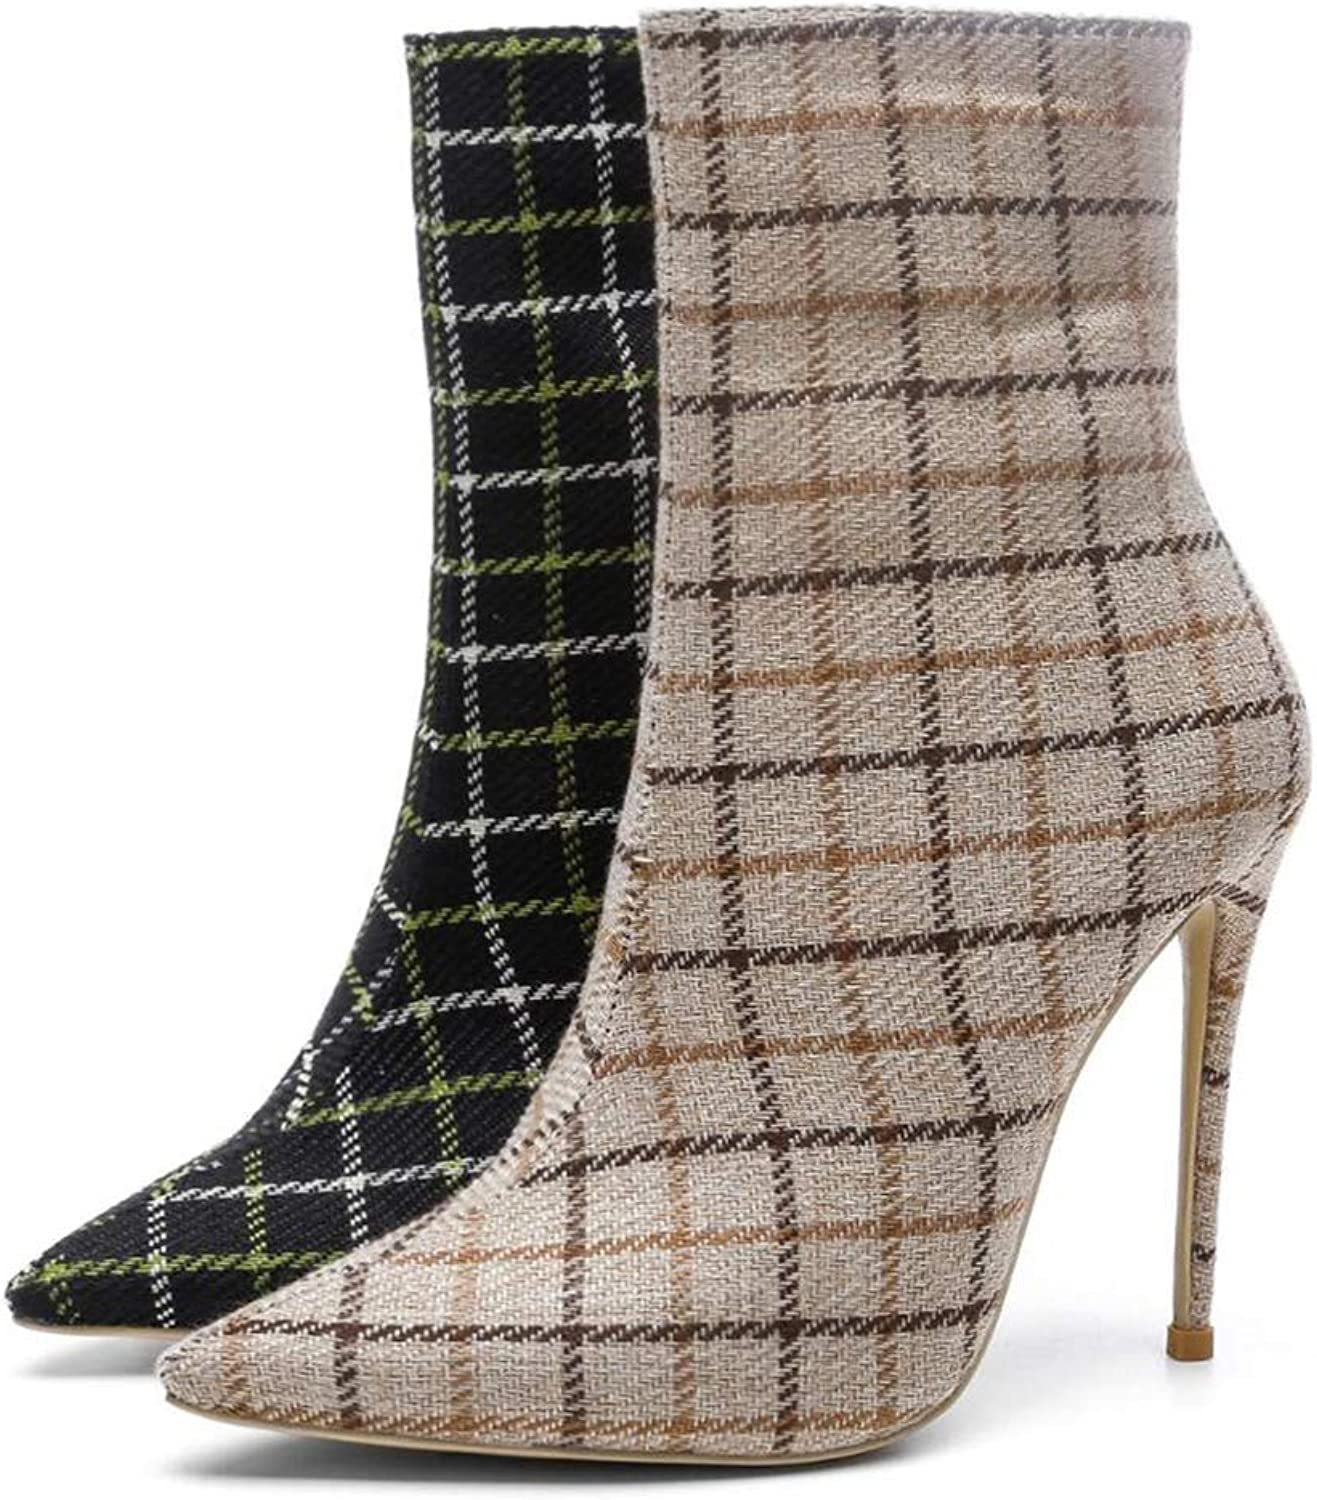 Women's Boots Autumn Plaid Ankle Boots Sexy Pointed Super High Heel Stiletto Large Size Women's Boots Martin Boots